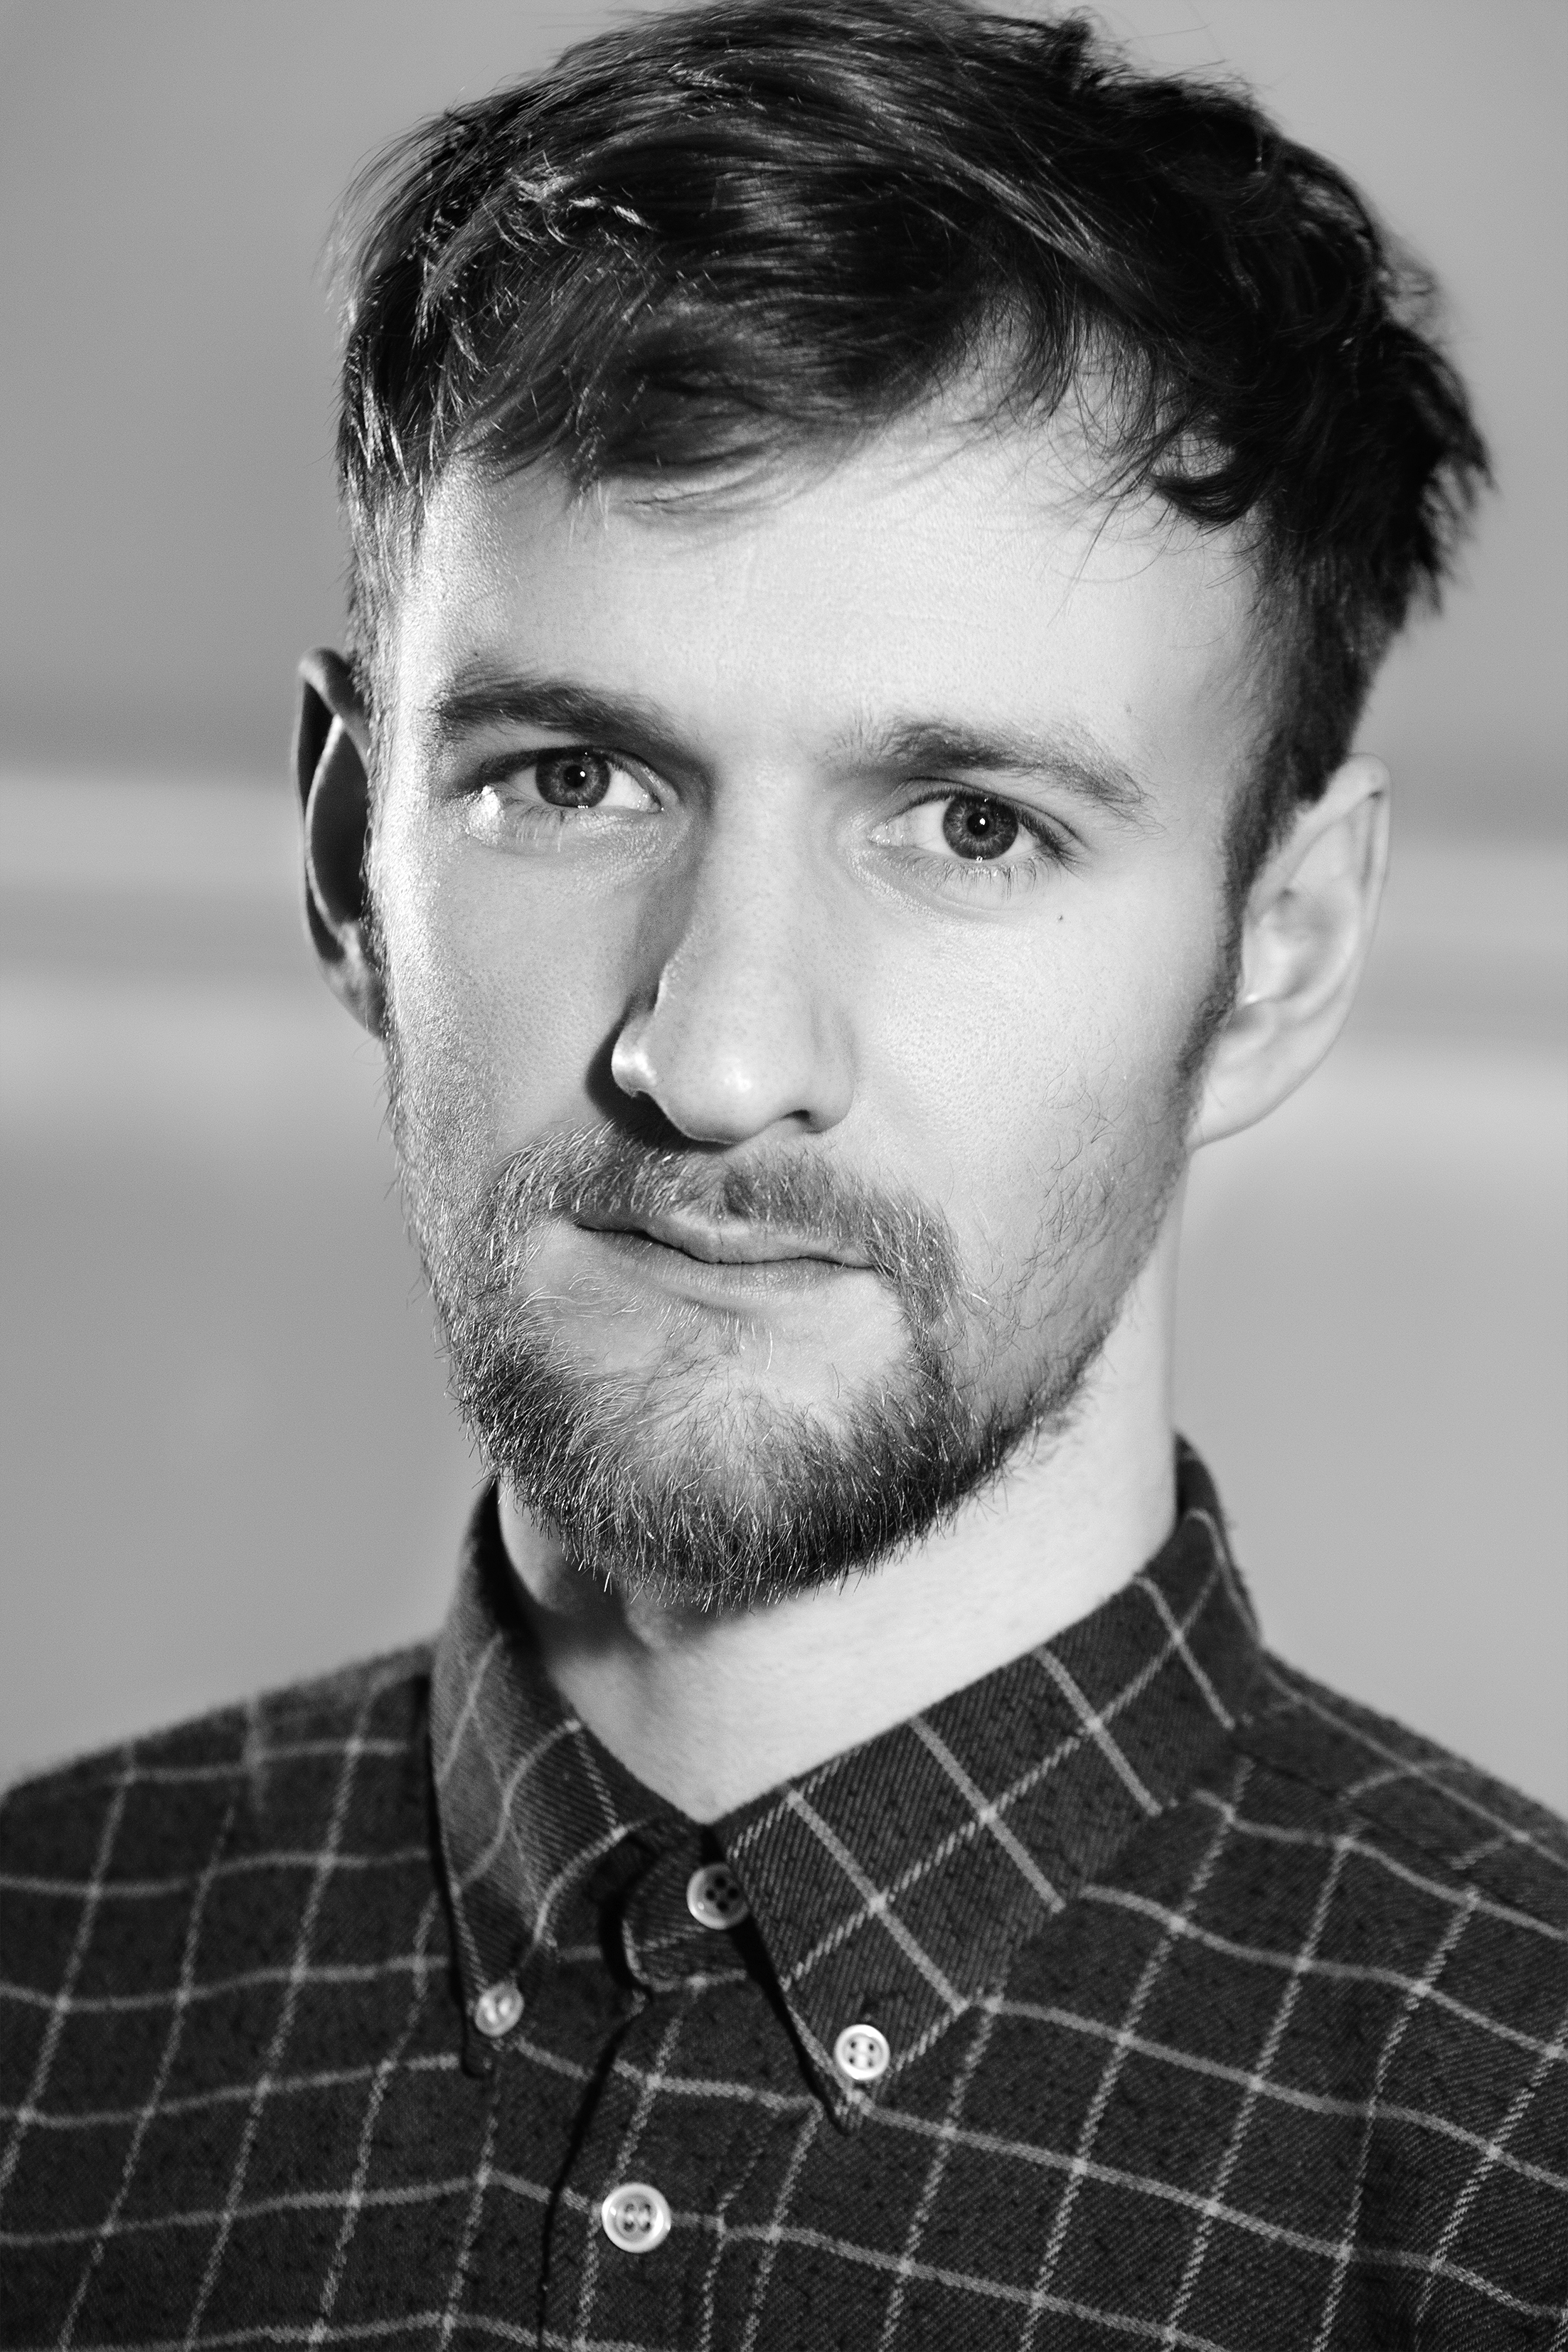 James Finnemore   As a dance artist, James has extensive touring and performance experience, working with Hofesh Shechter Company, Carte Blanche, Olivier Dubois, Gary Clarke and Punchdrunk.  Alongside this, James has taught at various institutions and dance companies, delivering workshops and re-staging work from Hofesh Shechter's repertoire.  Since 2016 James has been an associate artist at The Point Eastleigh.